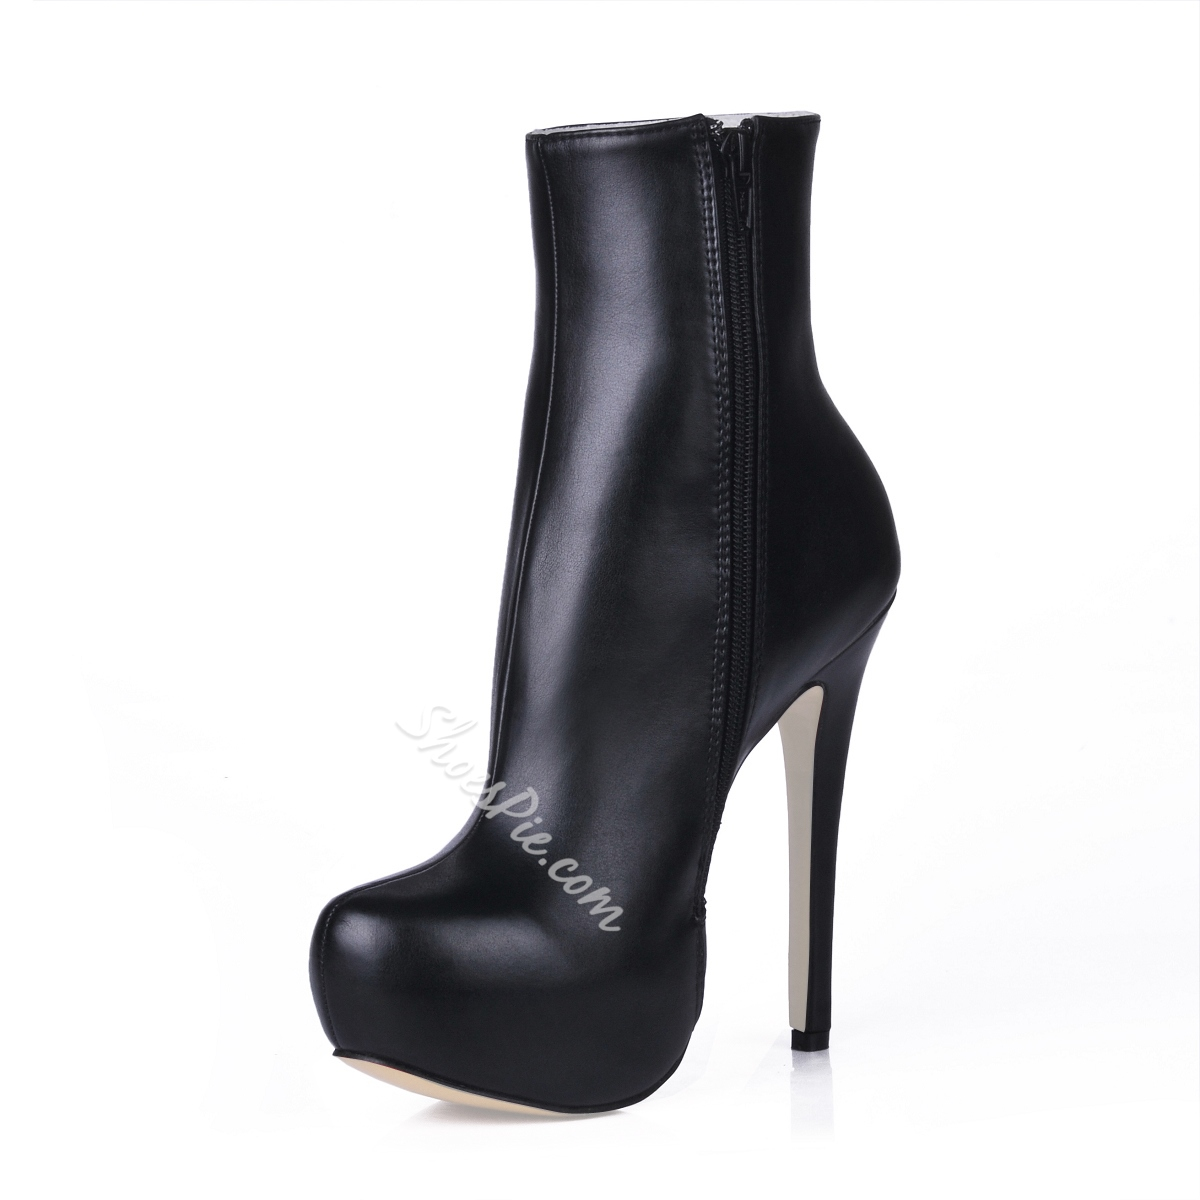 Great Stiletto Heels Closed-Toe Women's Boots